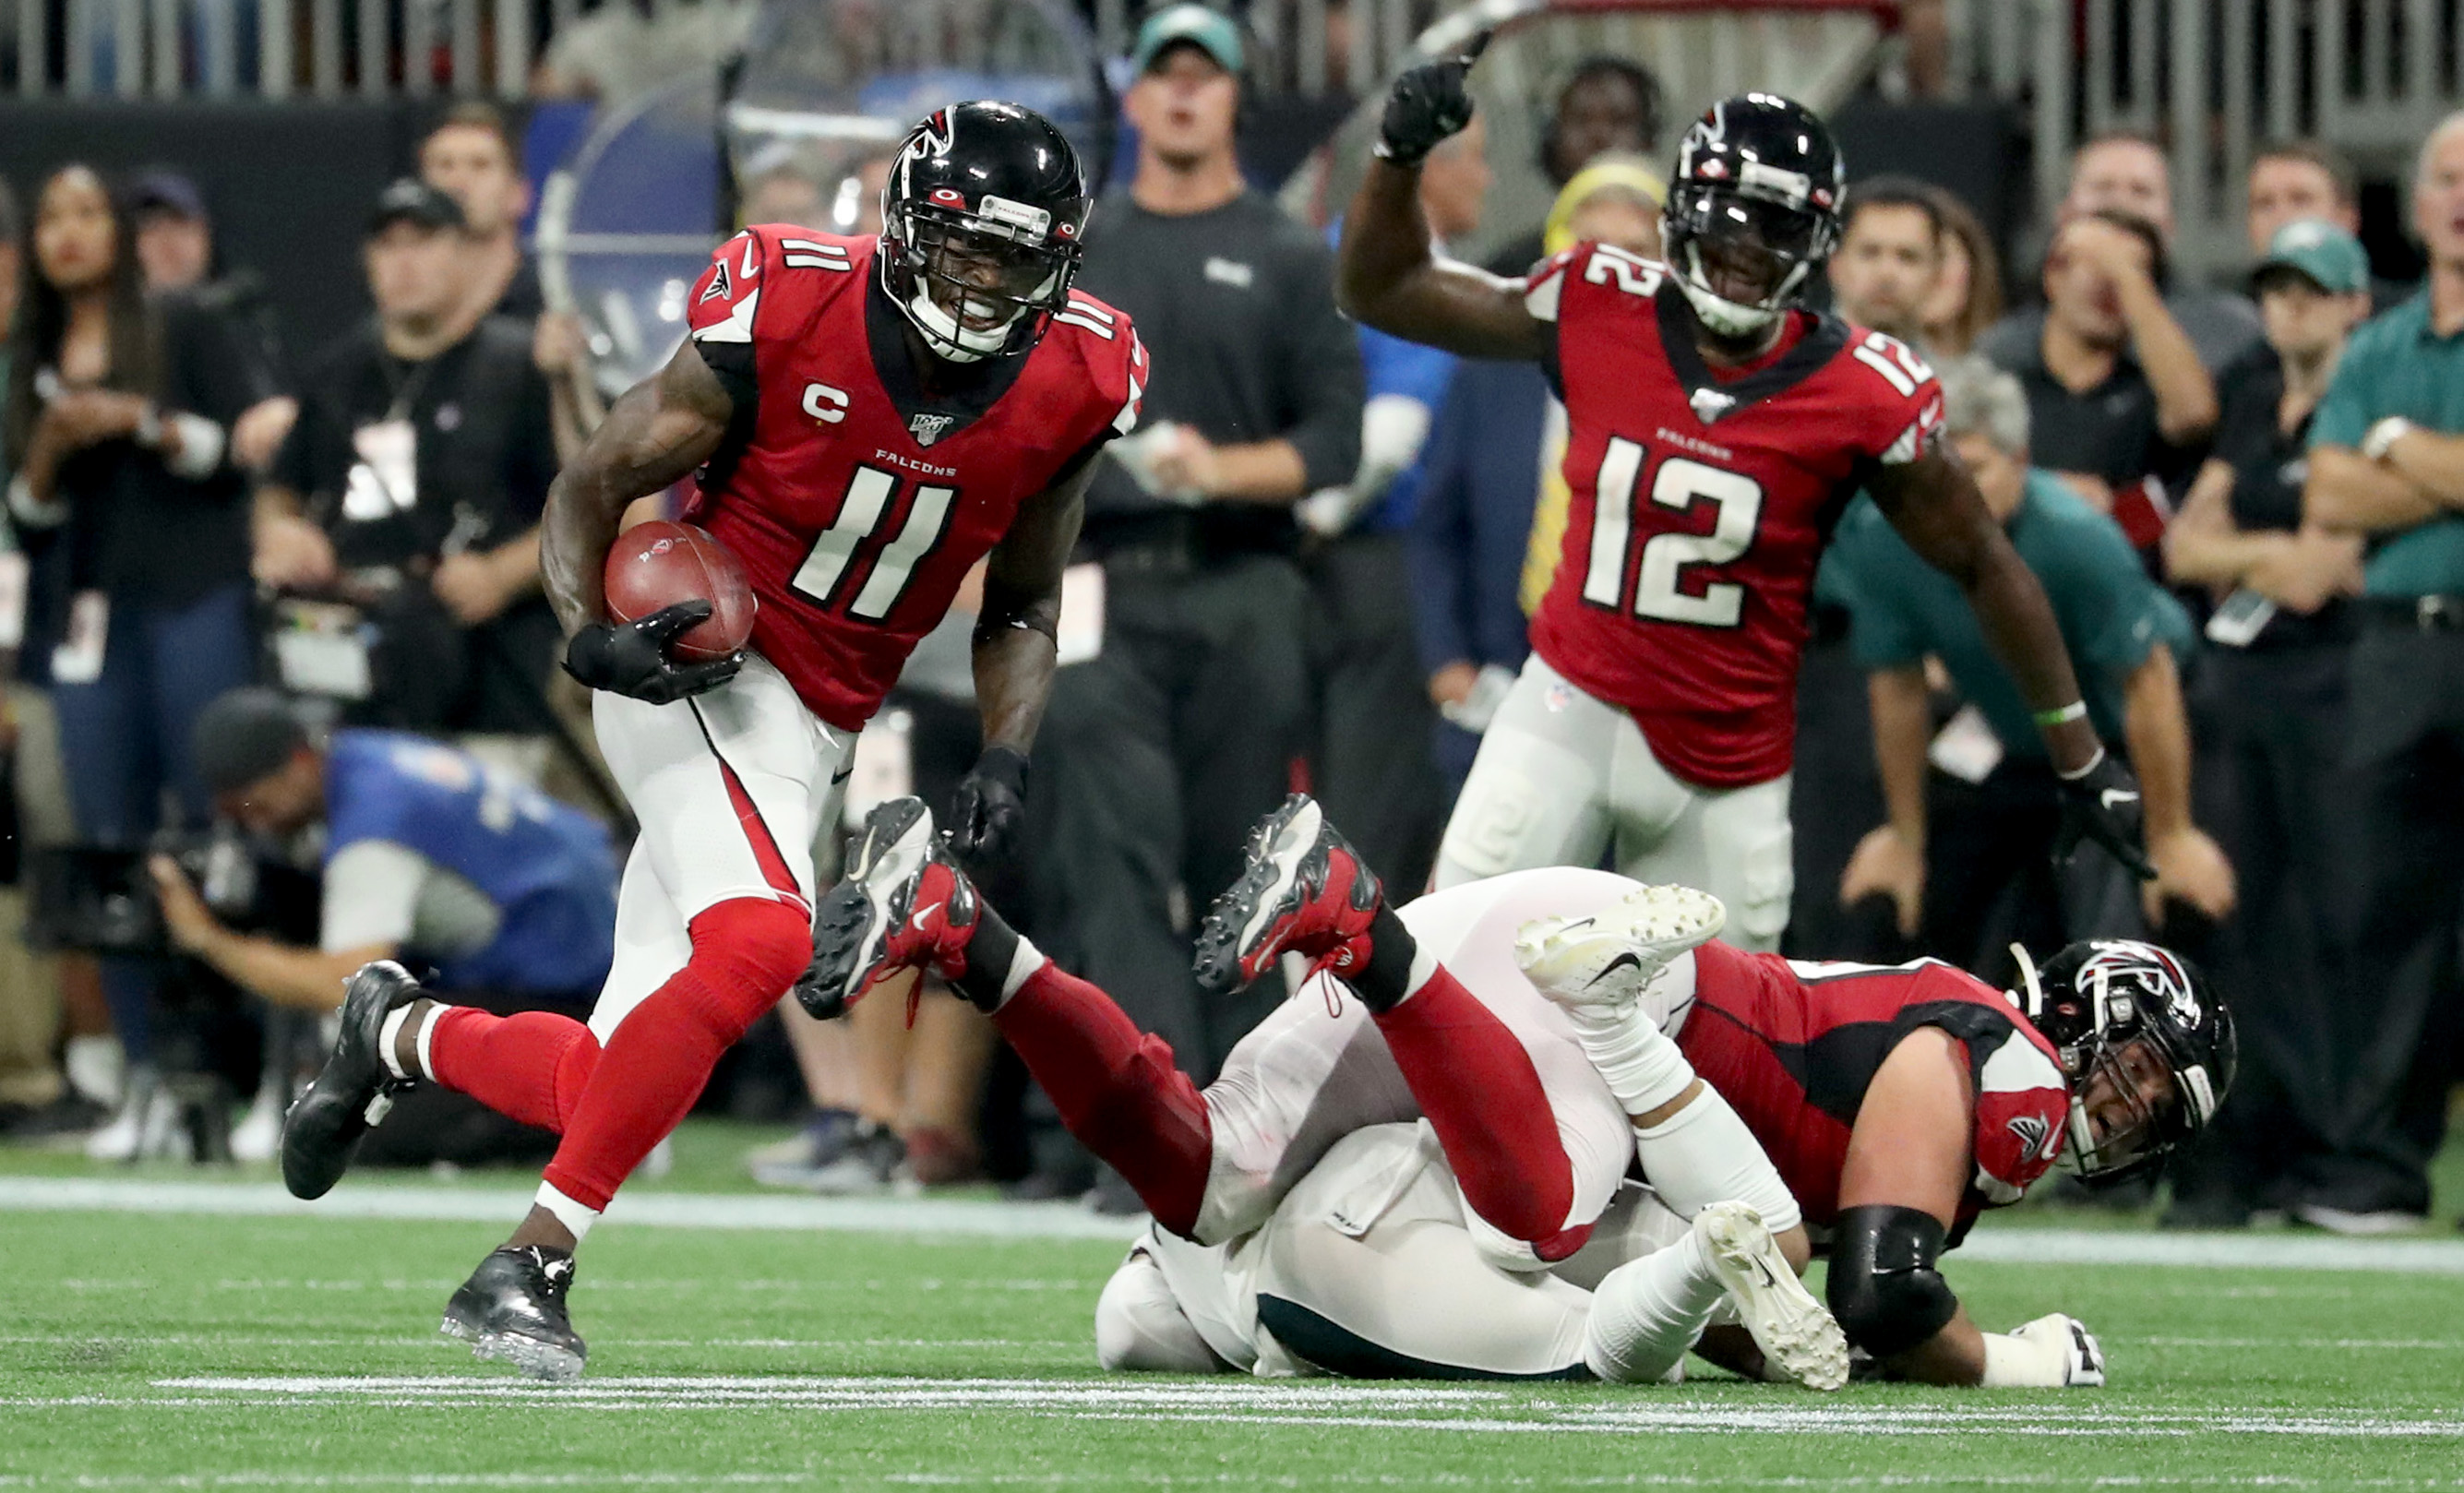 NFL: Philadelphia Eagles at Atlanta Falcons